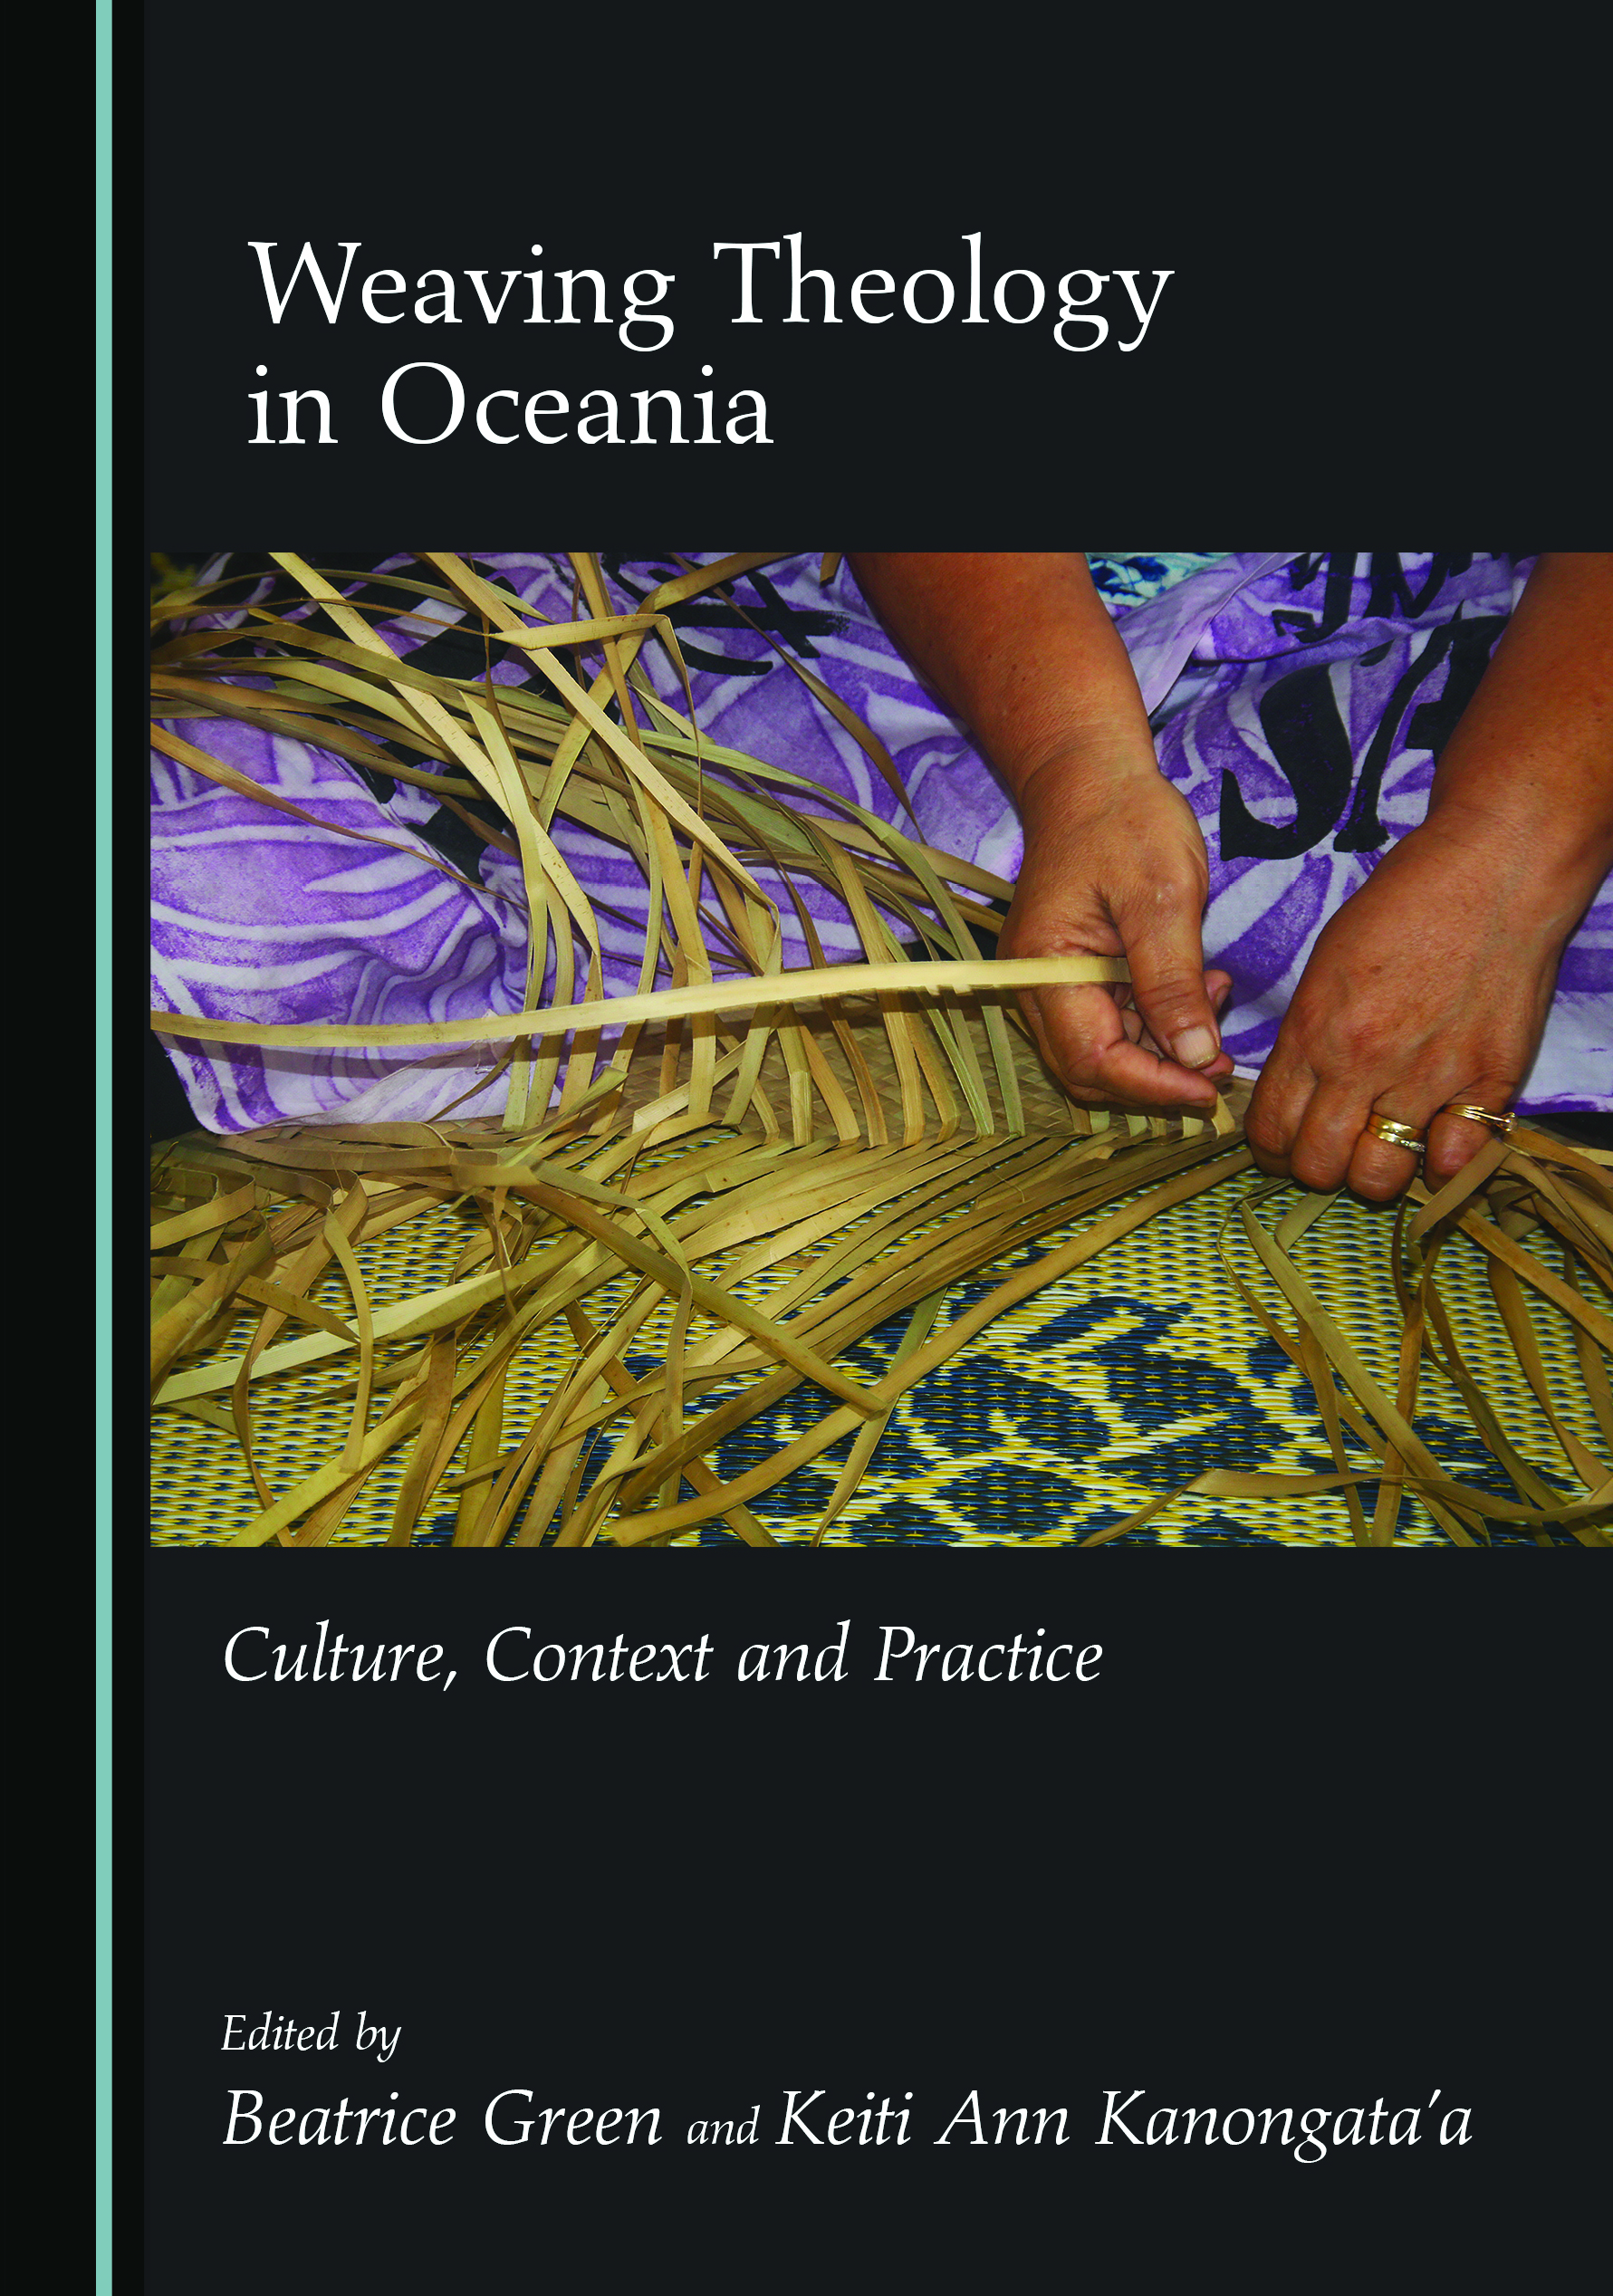 Weaving Theology in Oceania: Culture, Context and Practice